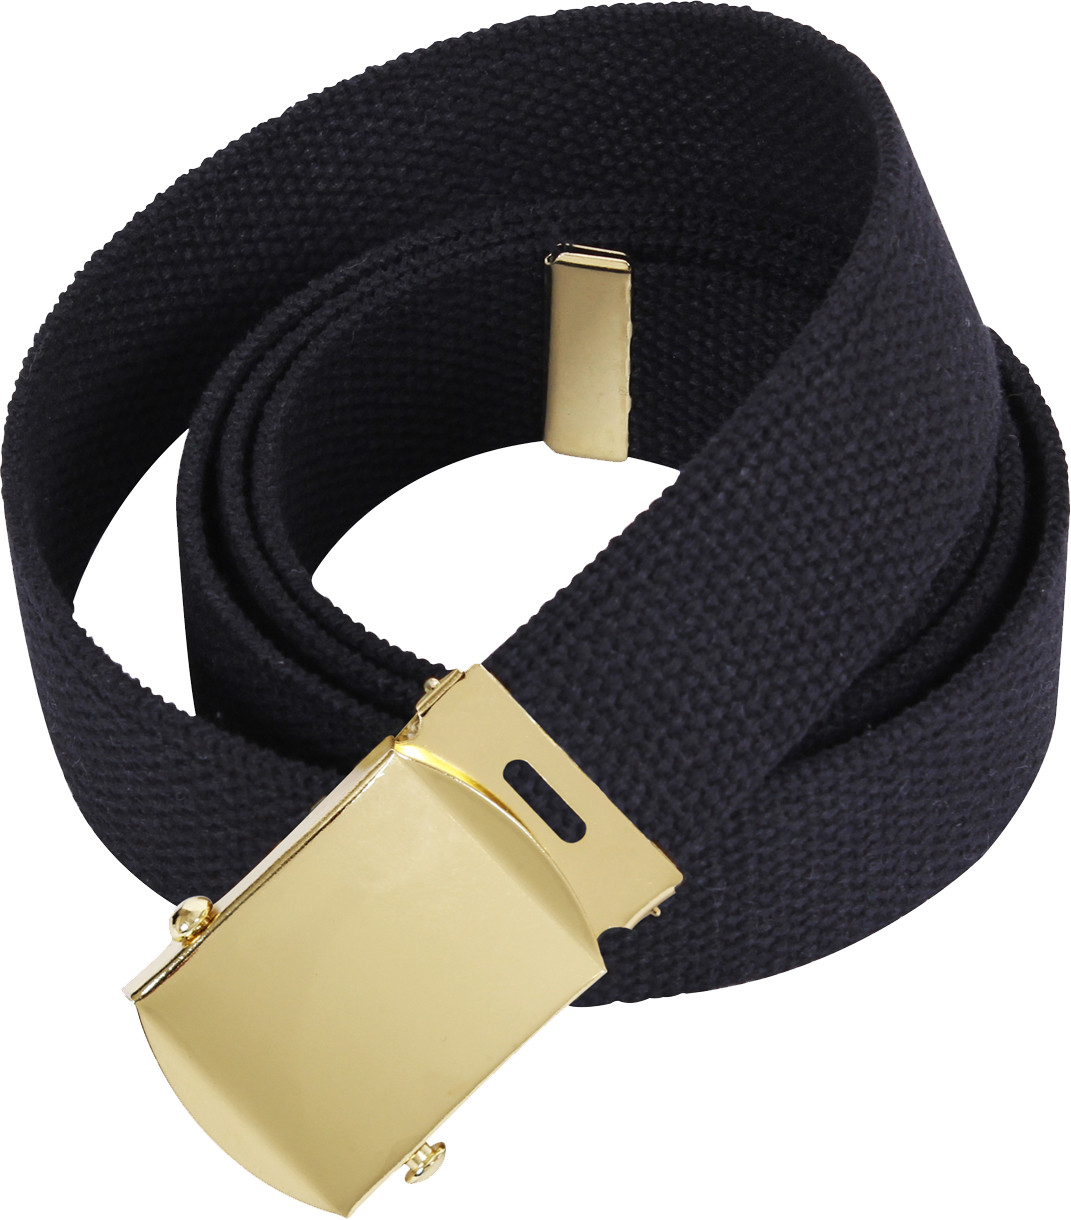 Black Military Web Belt with Brass Buckle d229be50742